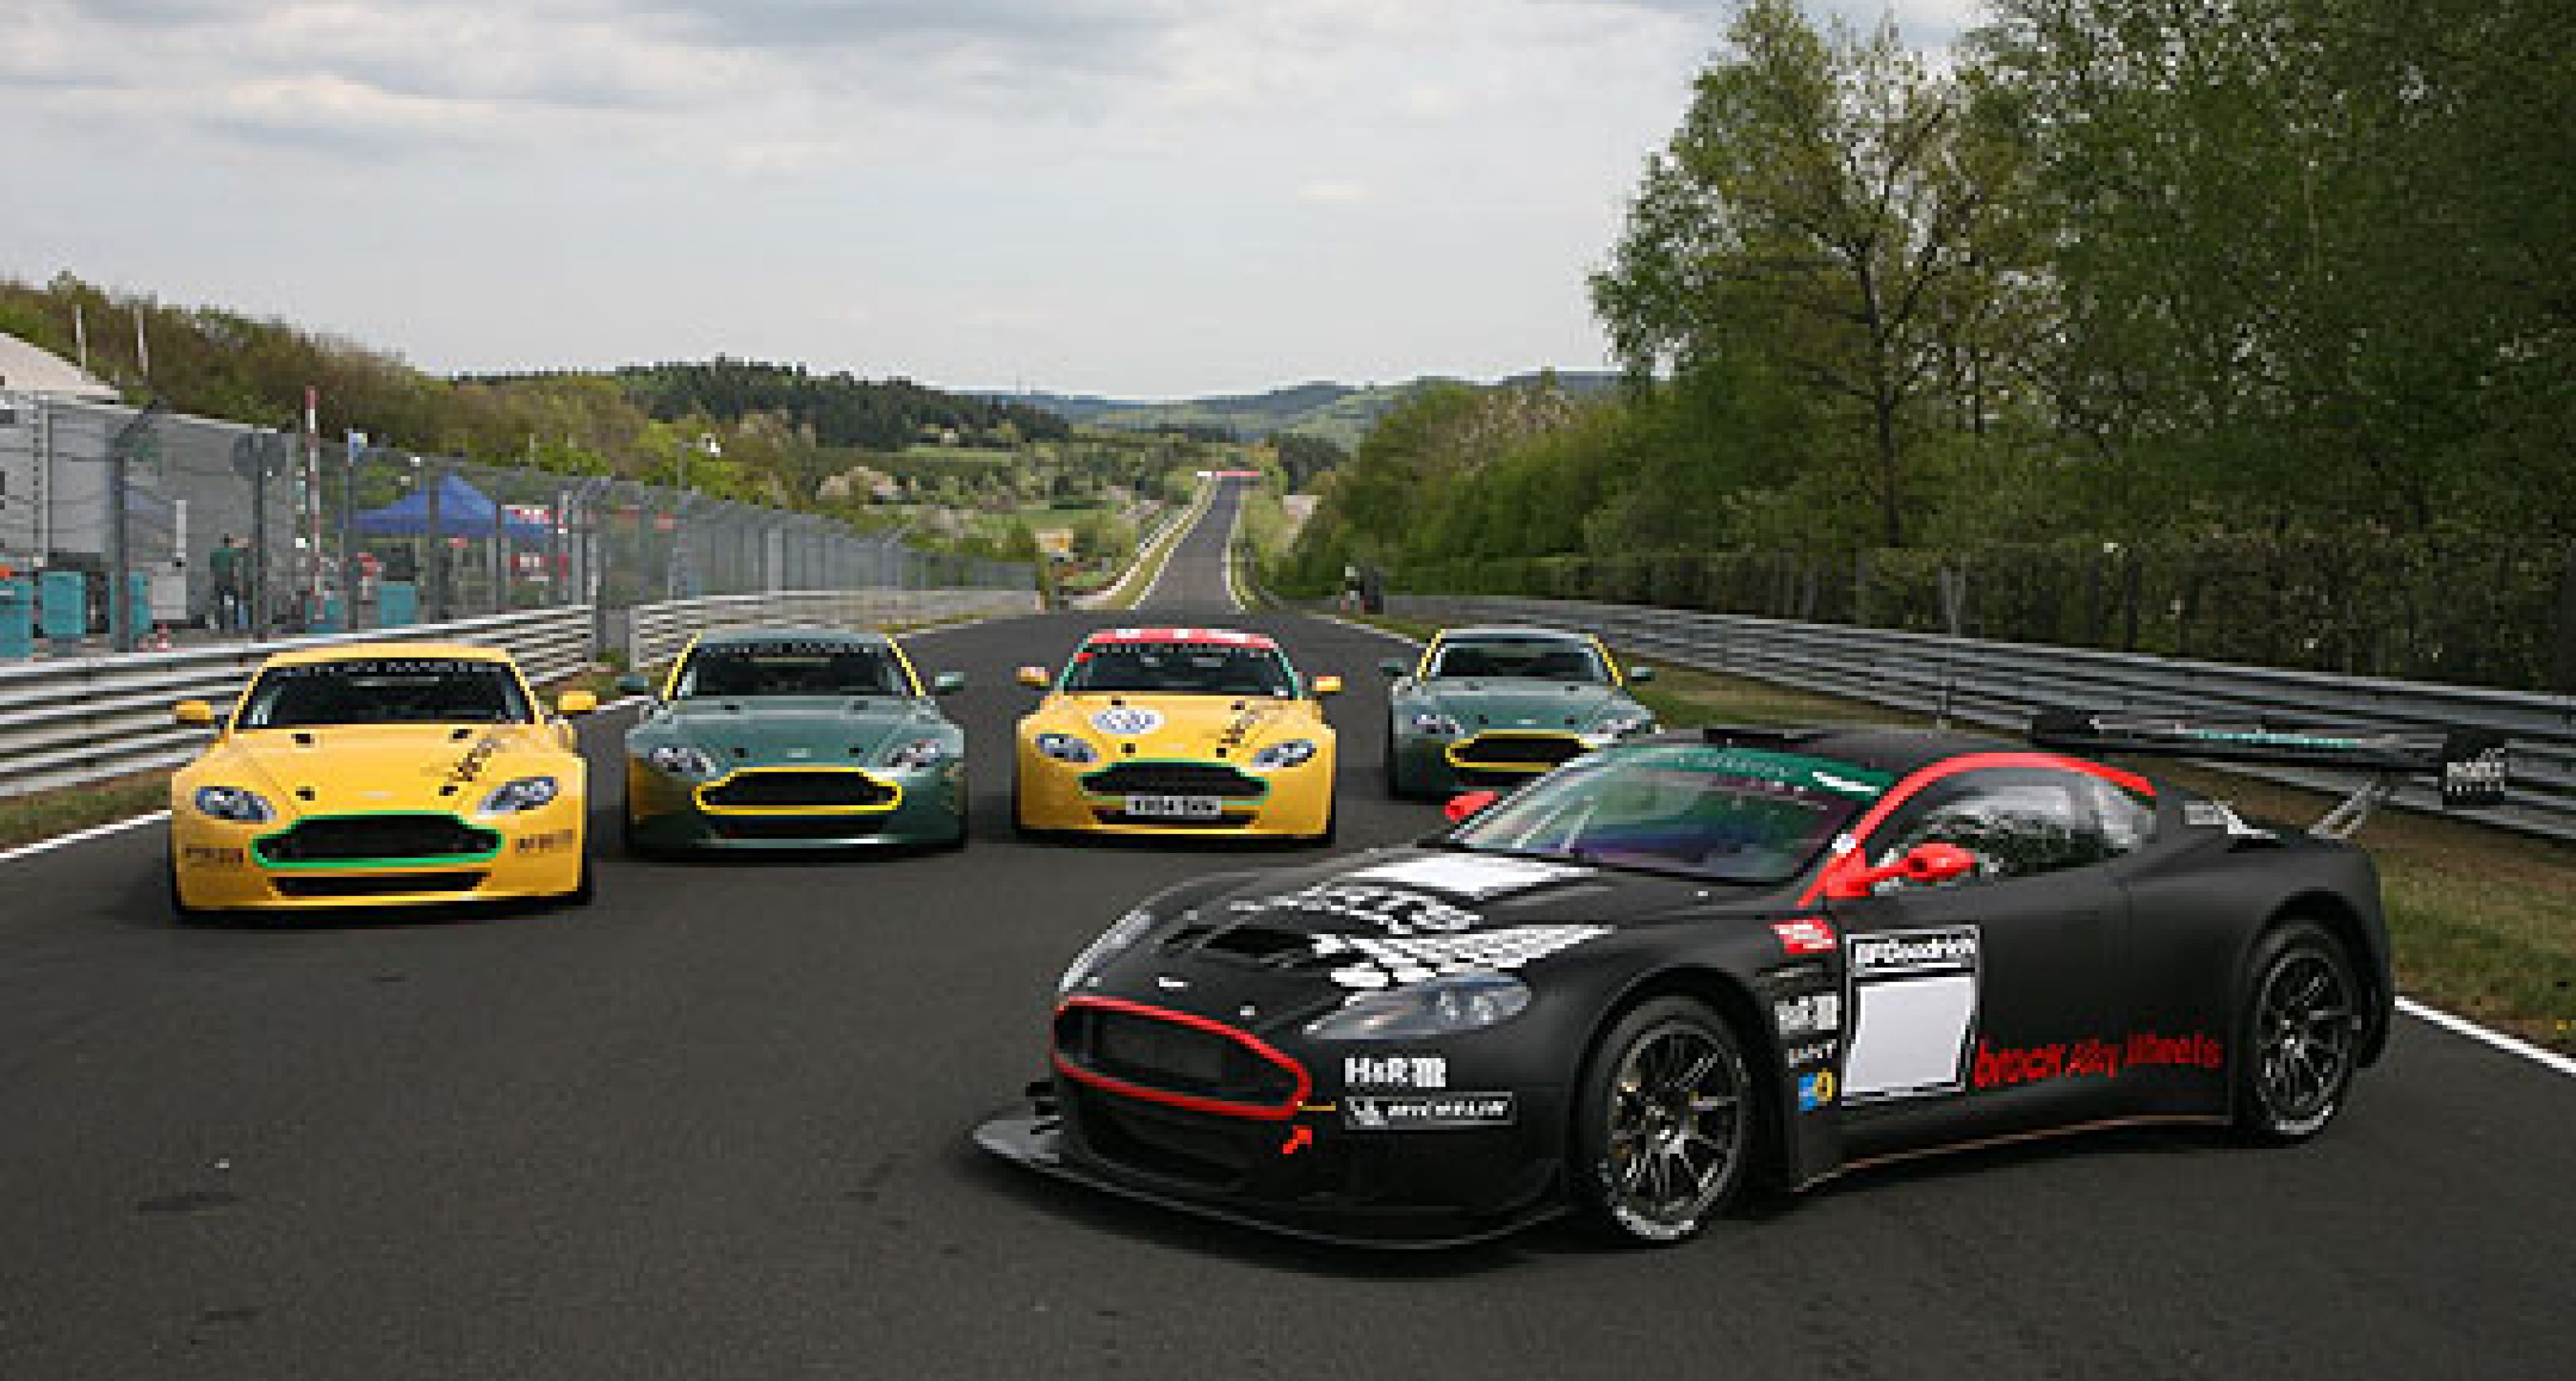 Aston Martin out in force at the Nordschleife in 2007